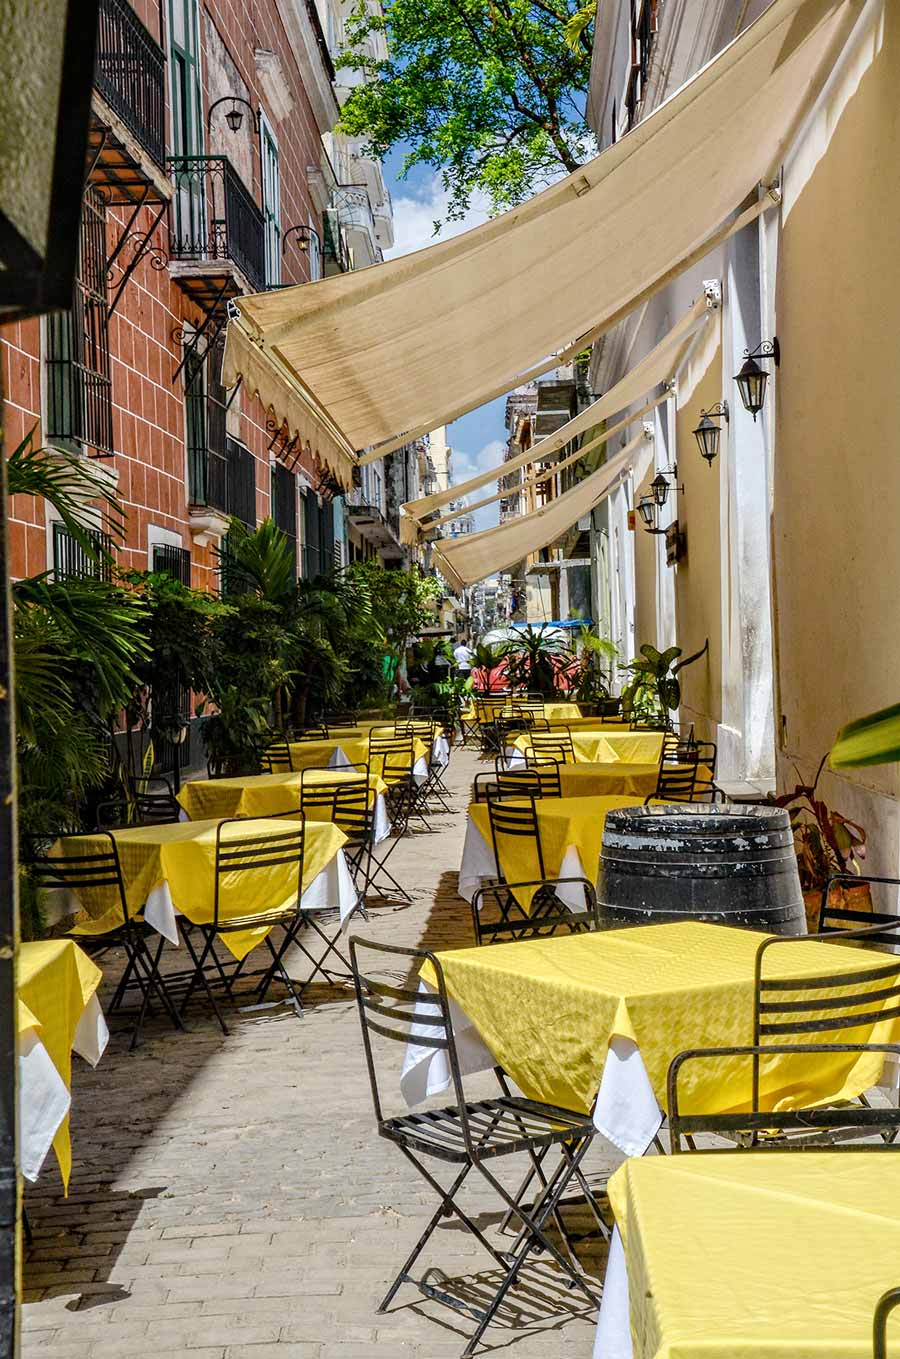 Cuba's outdoor dining cafes are growing